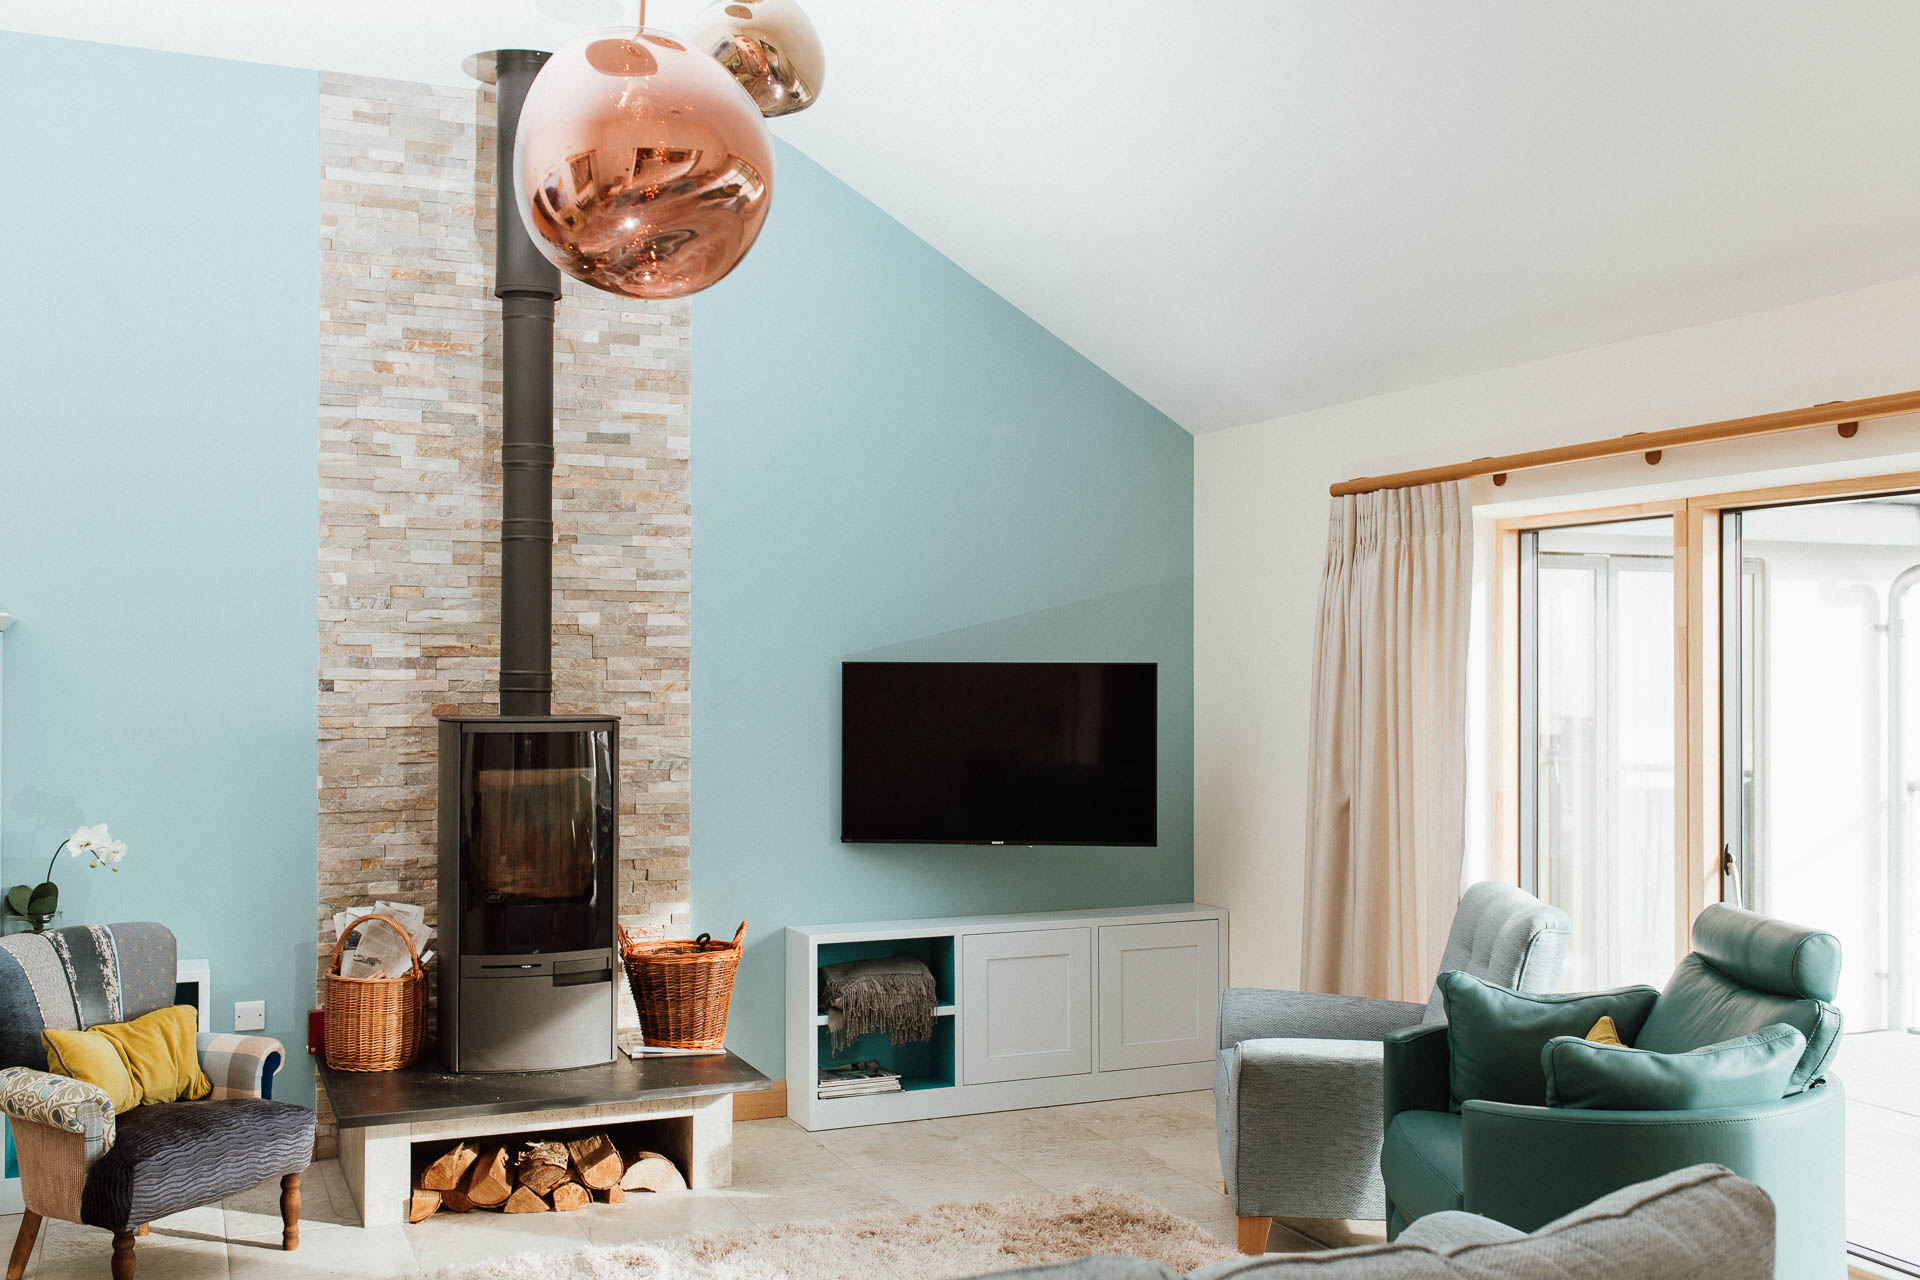 Stove and log store in a new thurlestone home by south devon architects andrew lethbridge associates